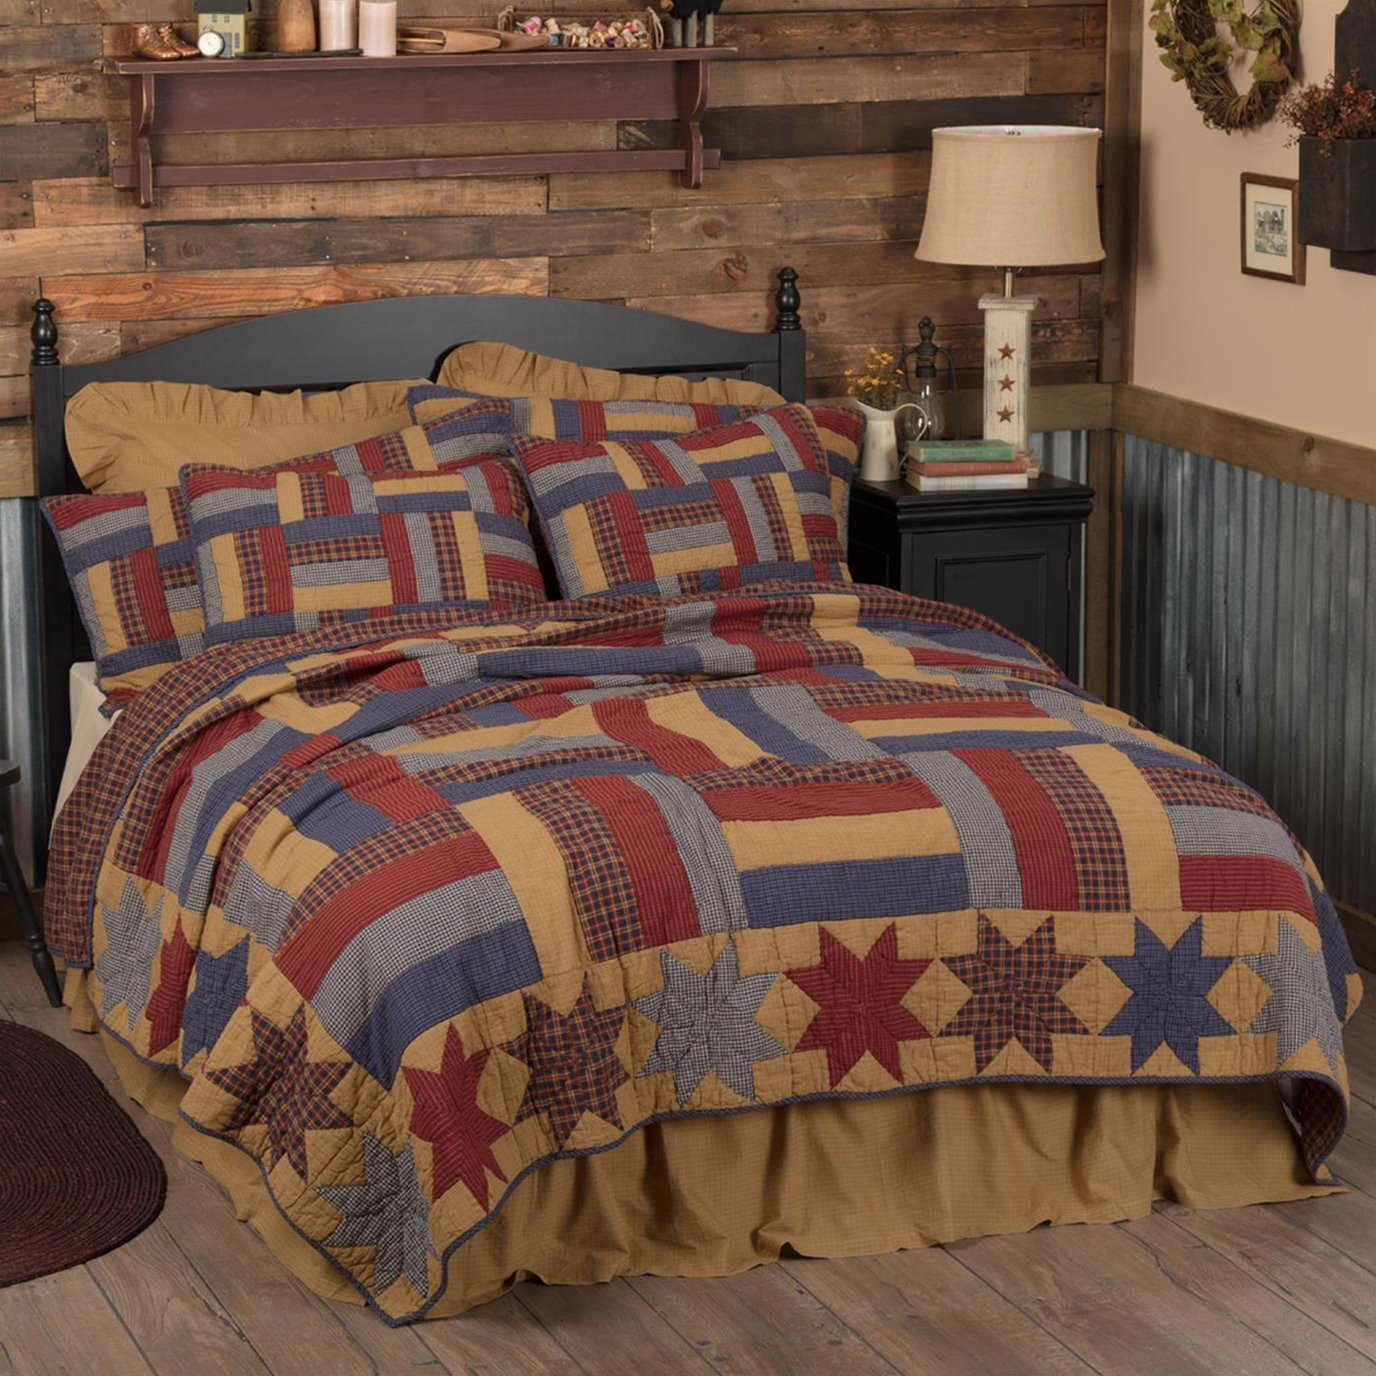 National Quilt Museum Kindred Stars and Bars Twin Quilt 68Wx86L